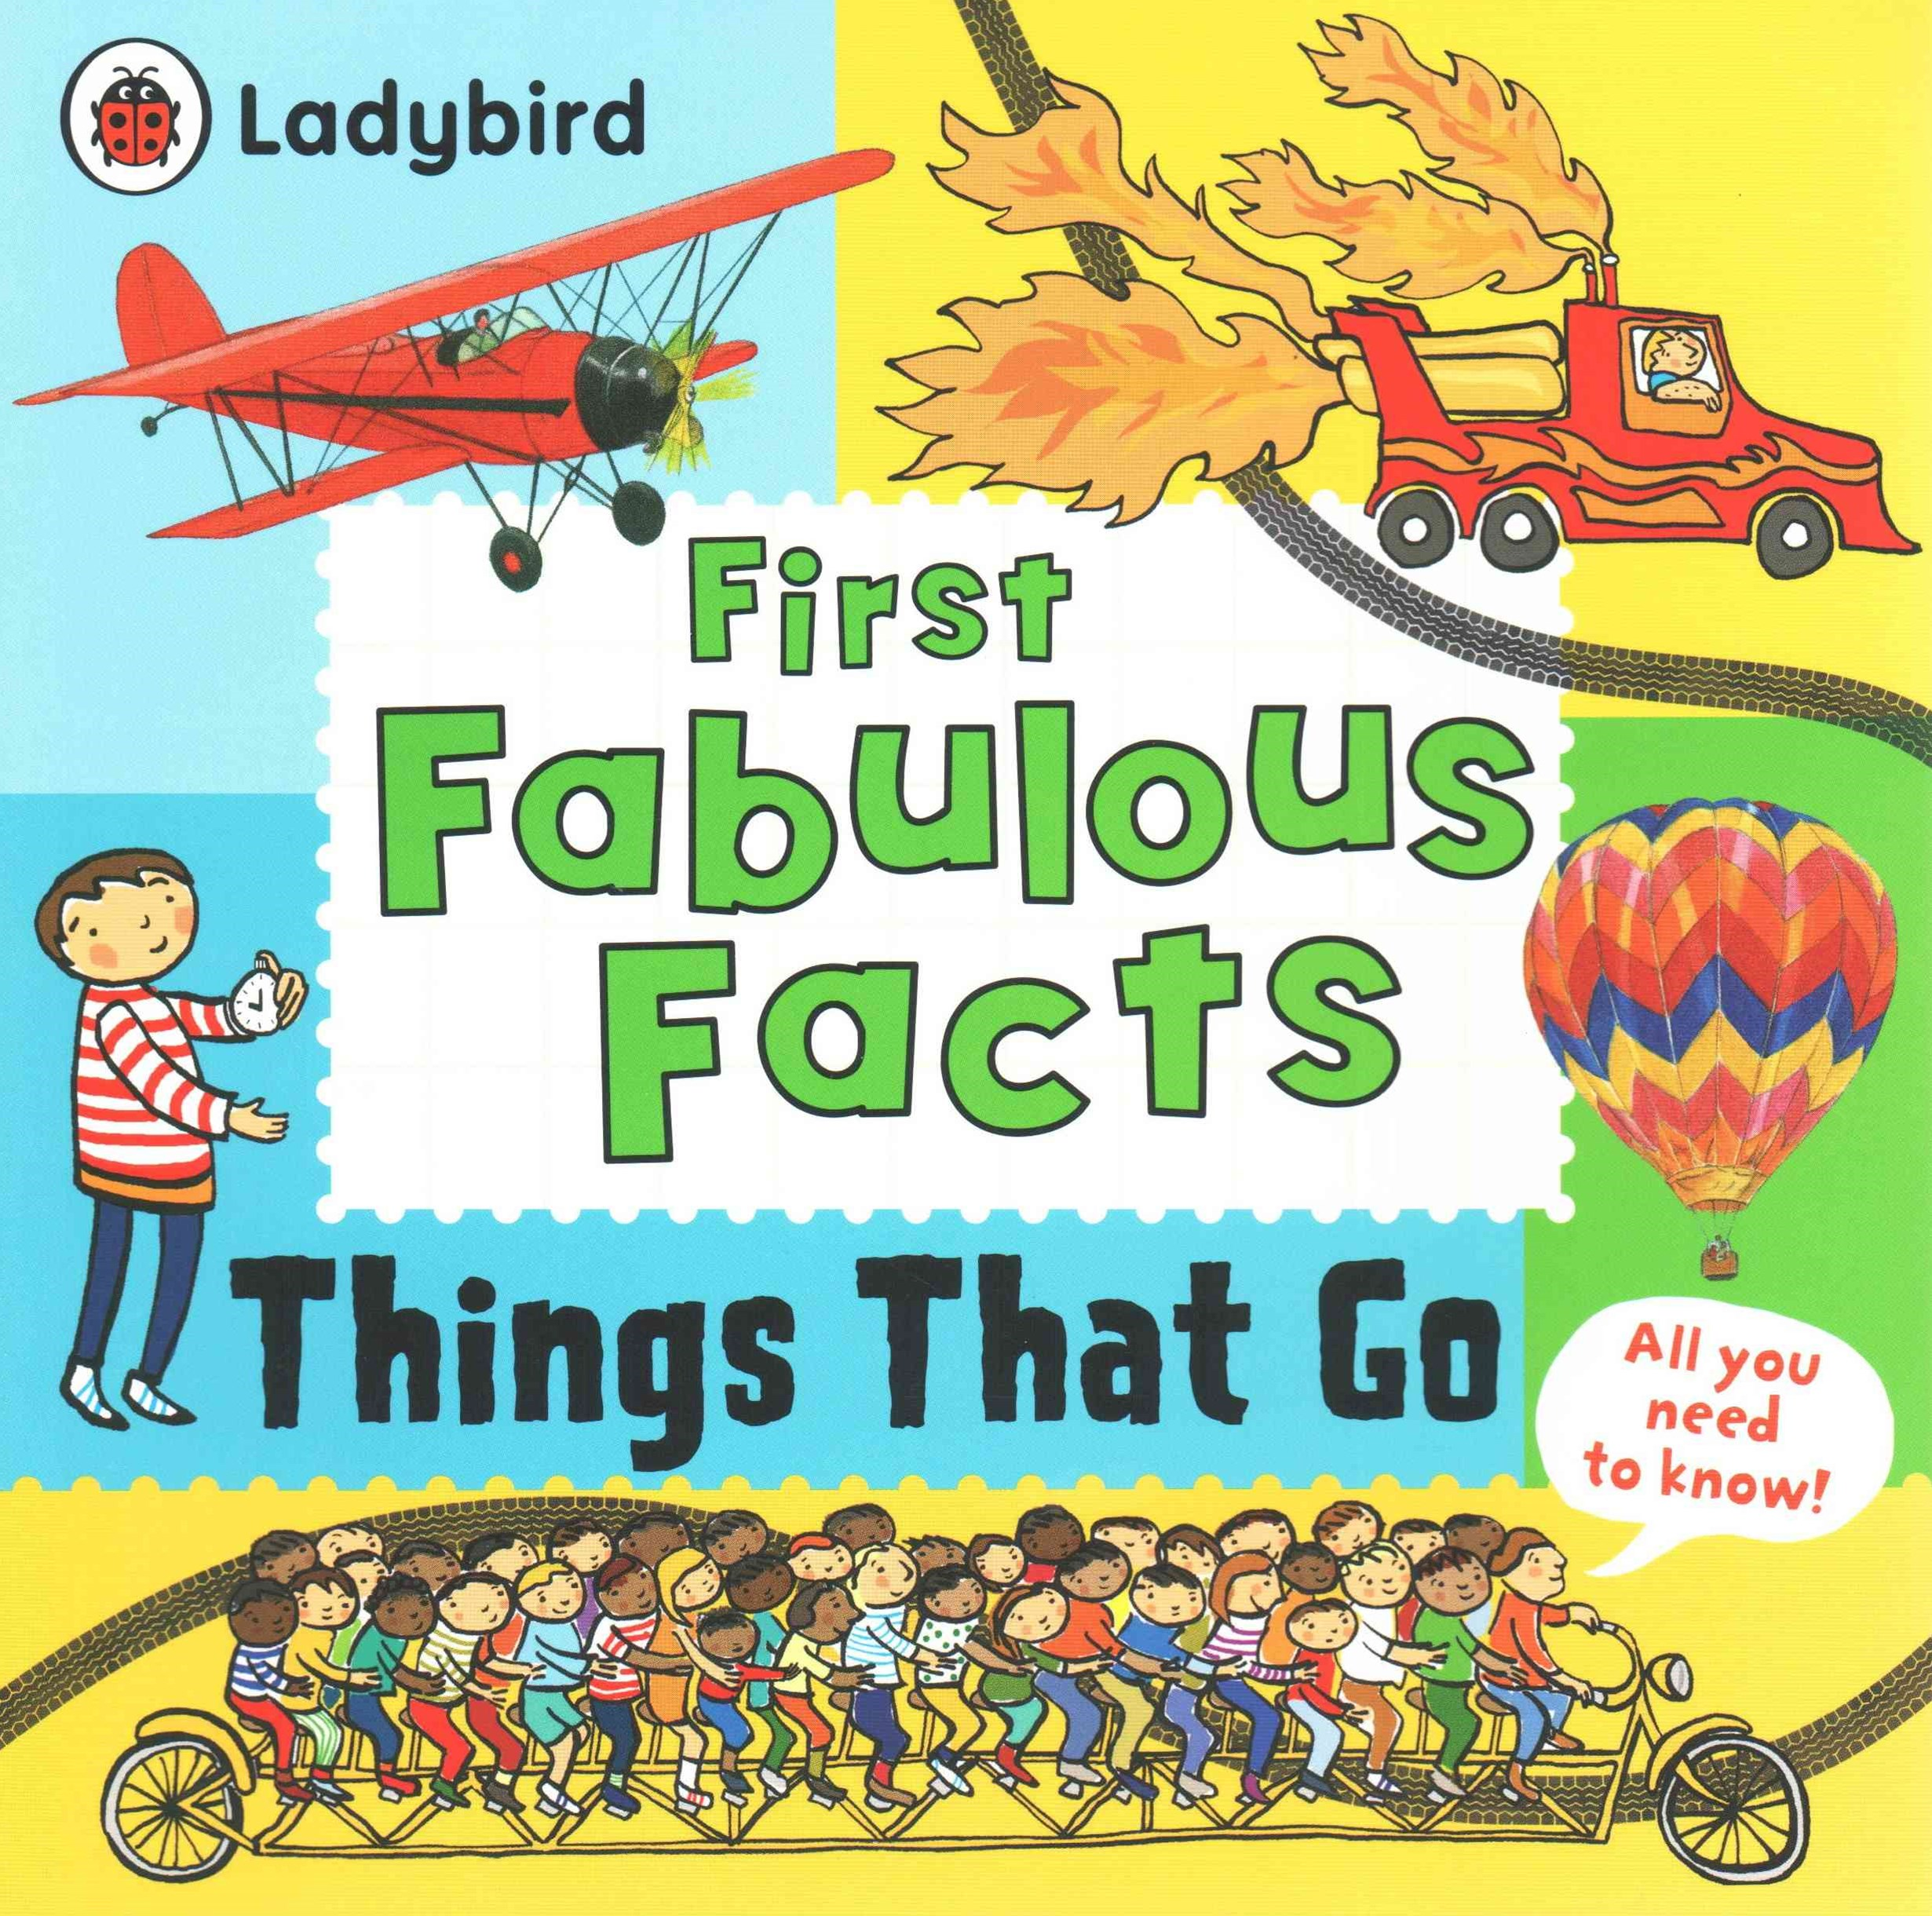 Ladybird First Fabulous Facts: Things That Go